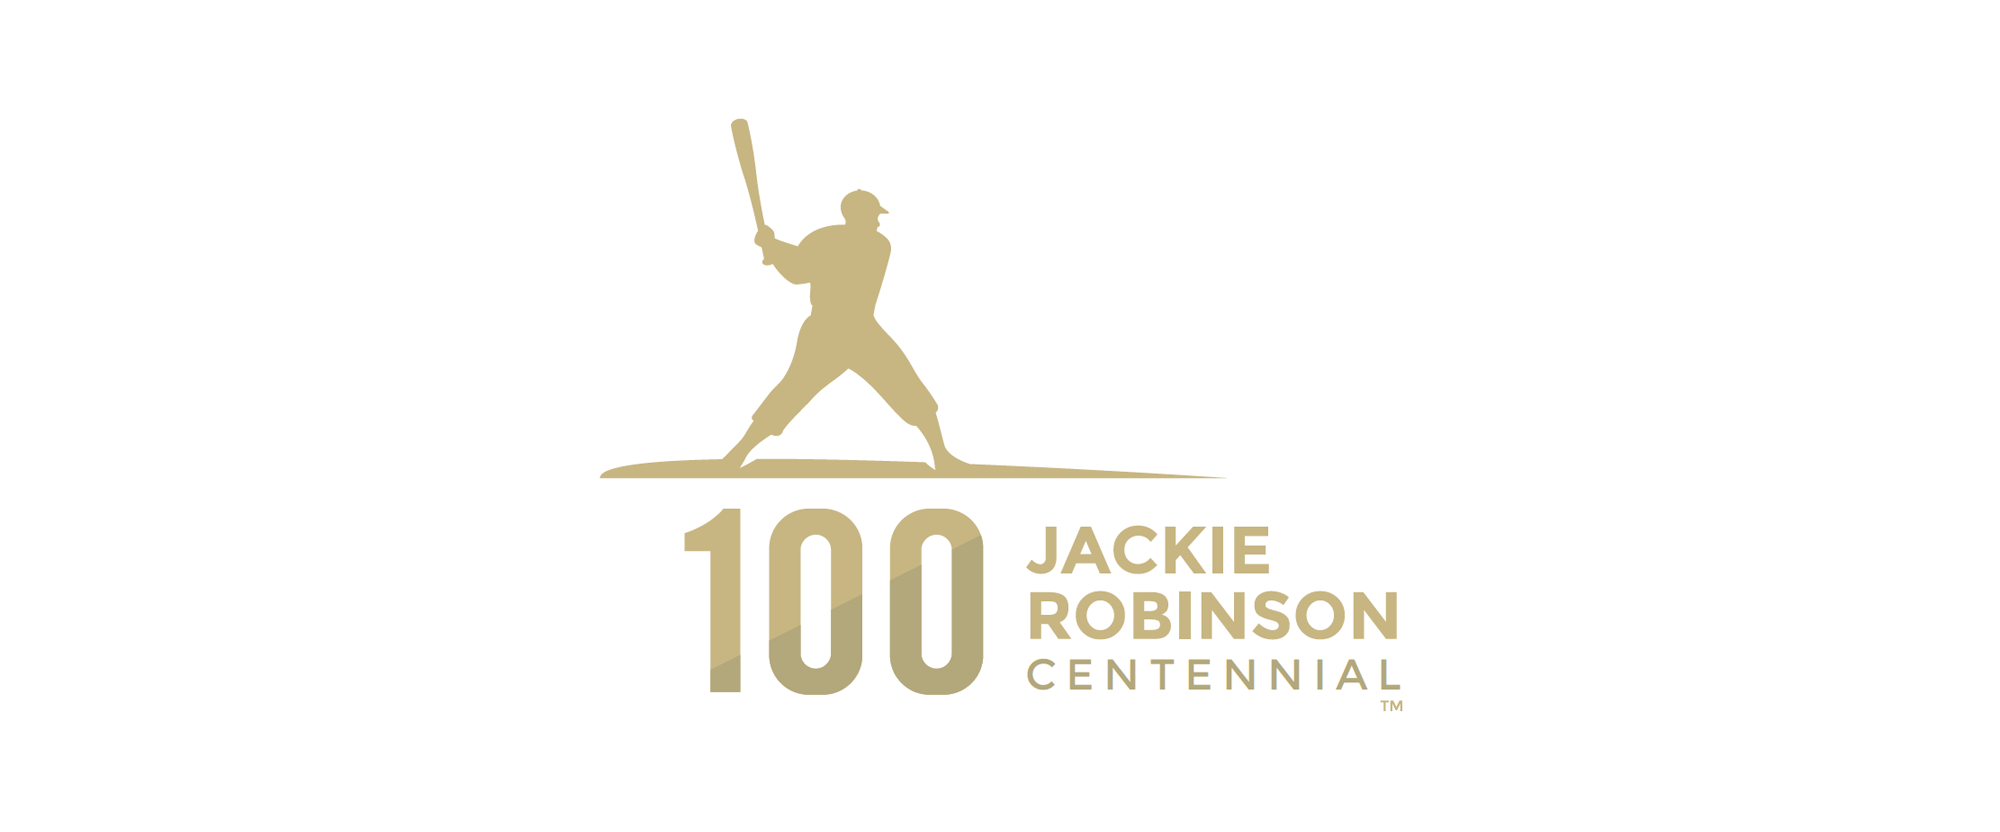 New Logo for Jackie Robinson Centennial by Joe Bosack & Co.